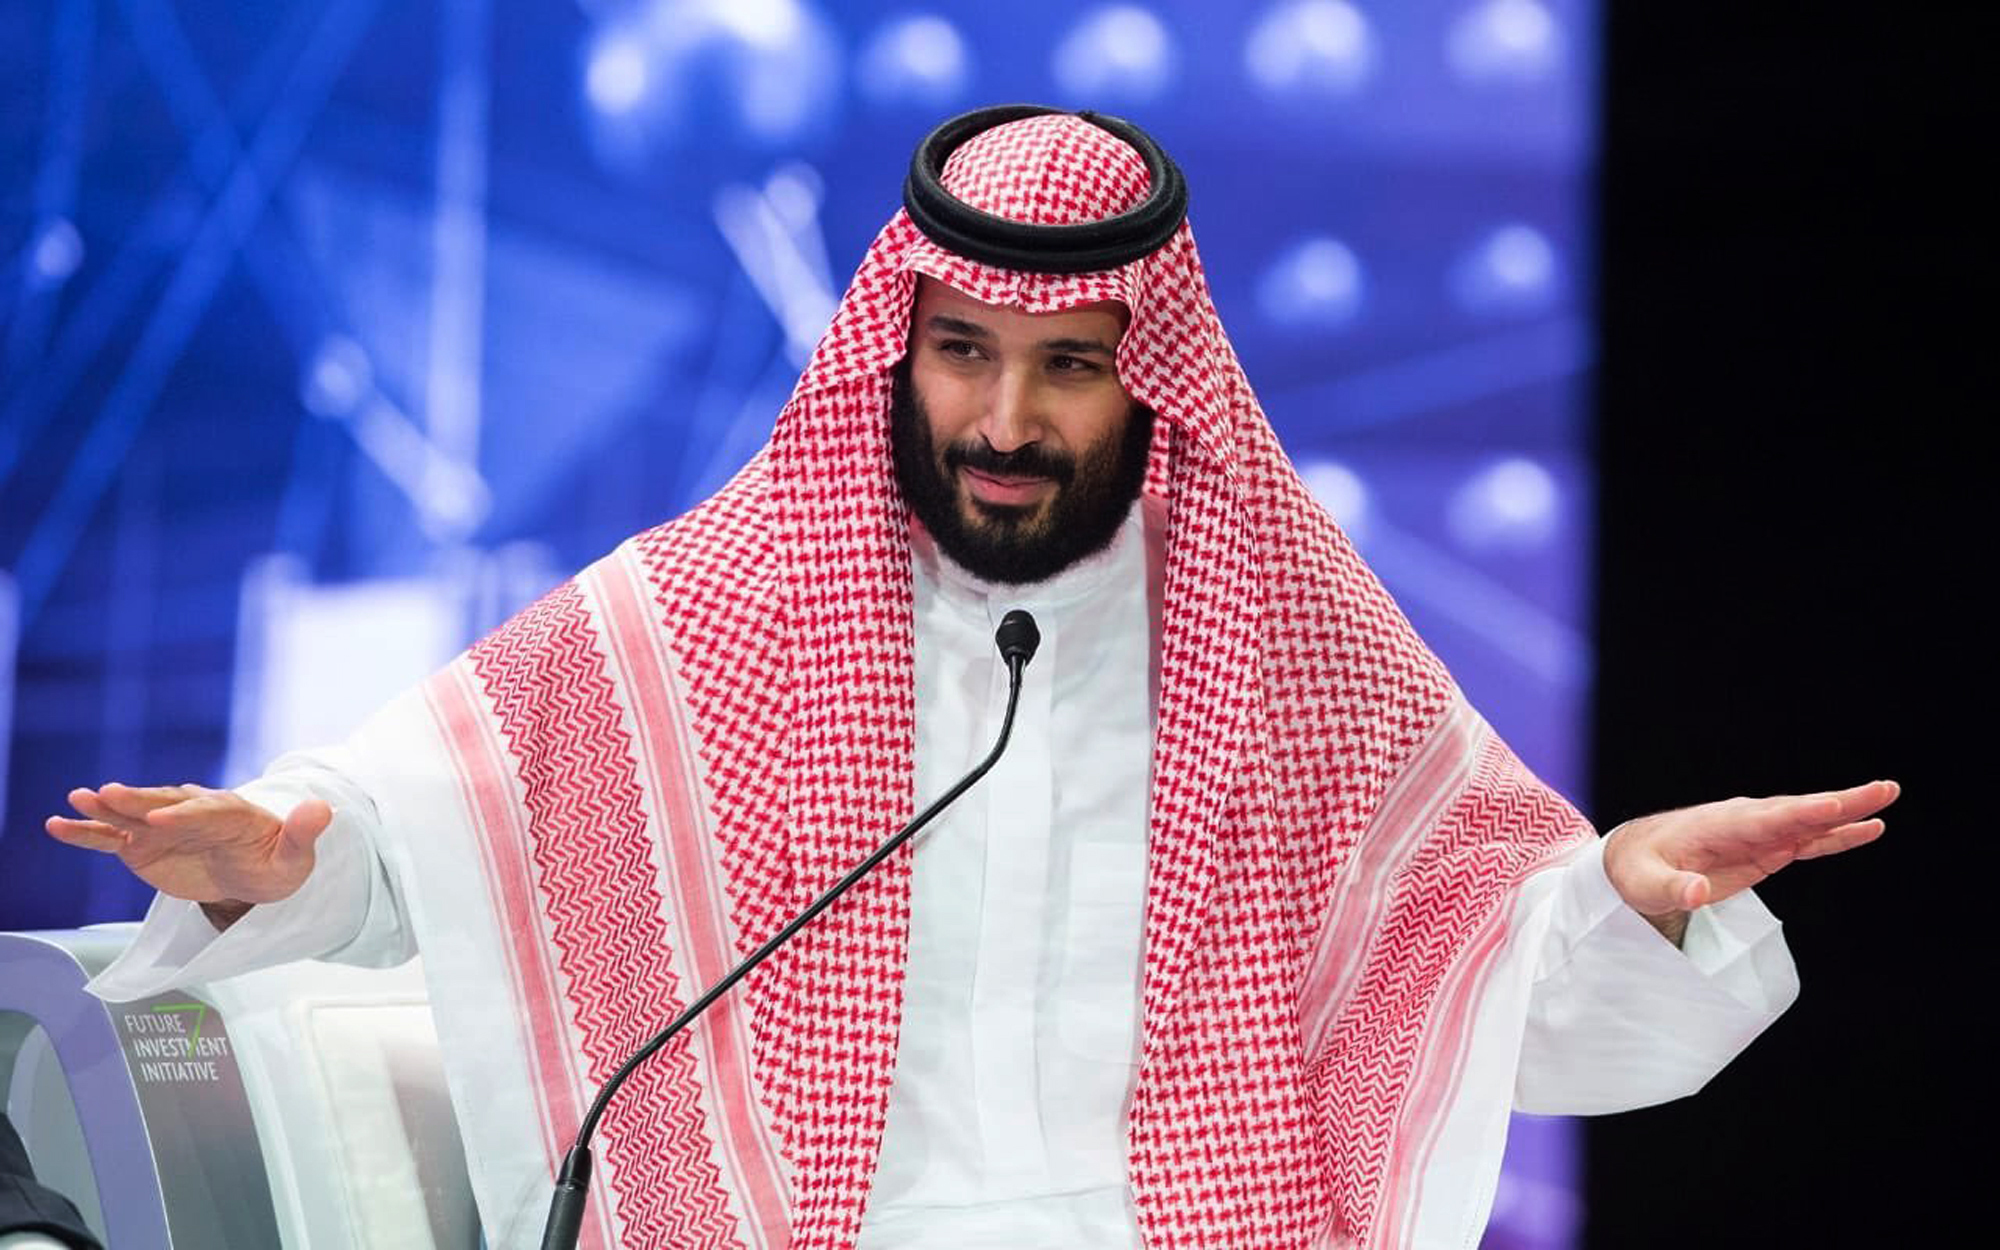 Trump makes backing MbS 'sound easy' after Khashoggi's death